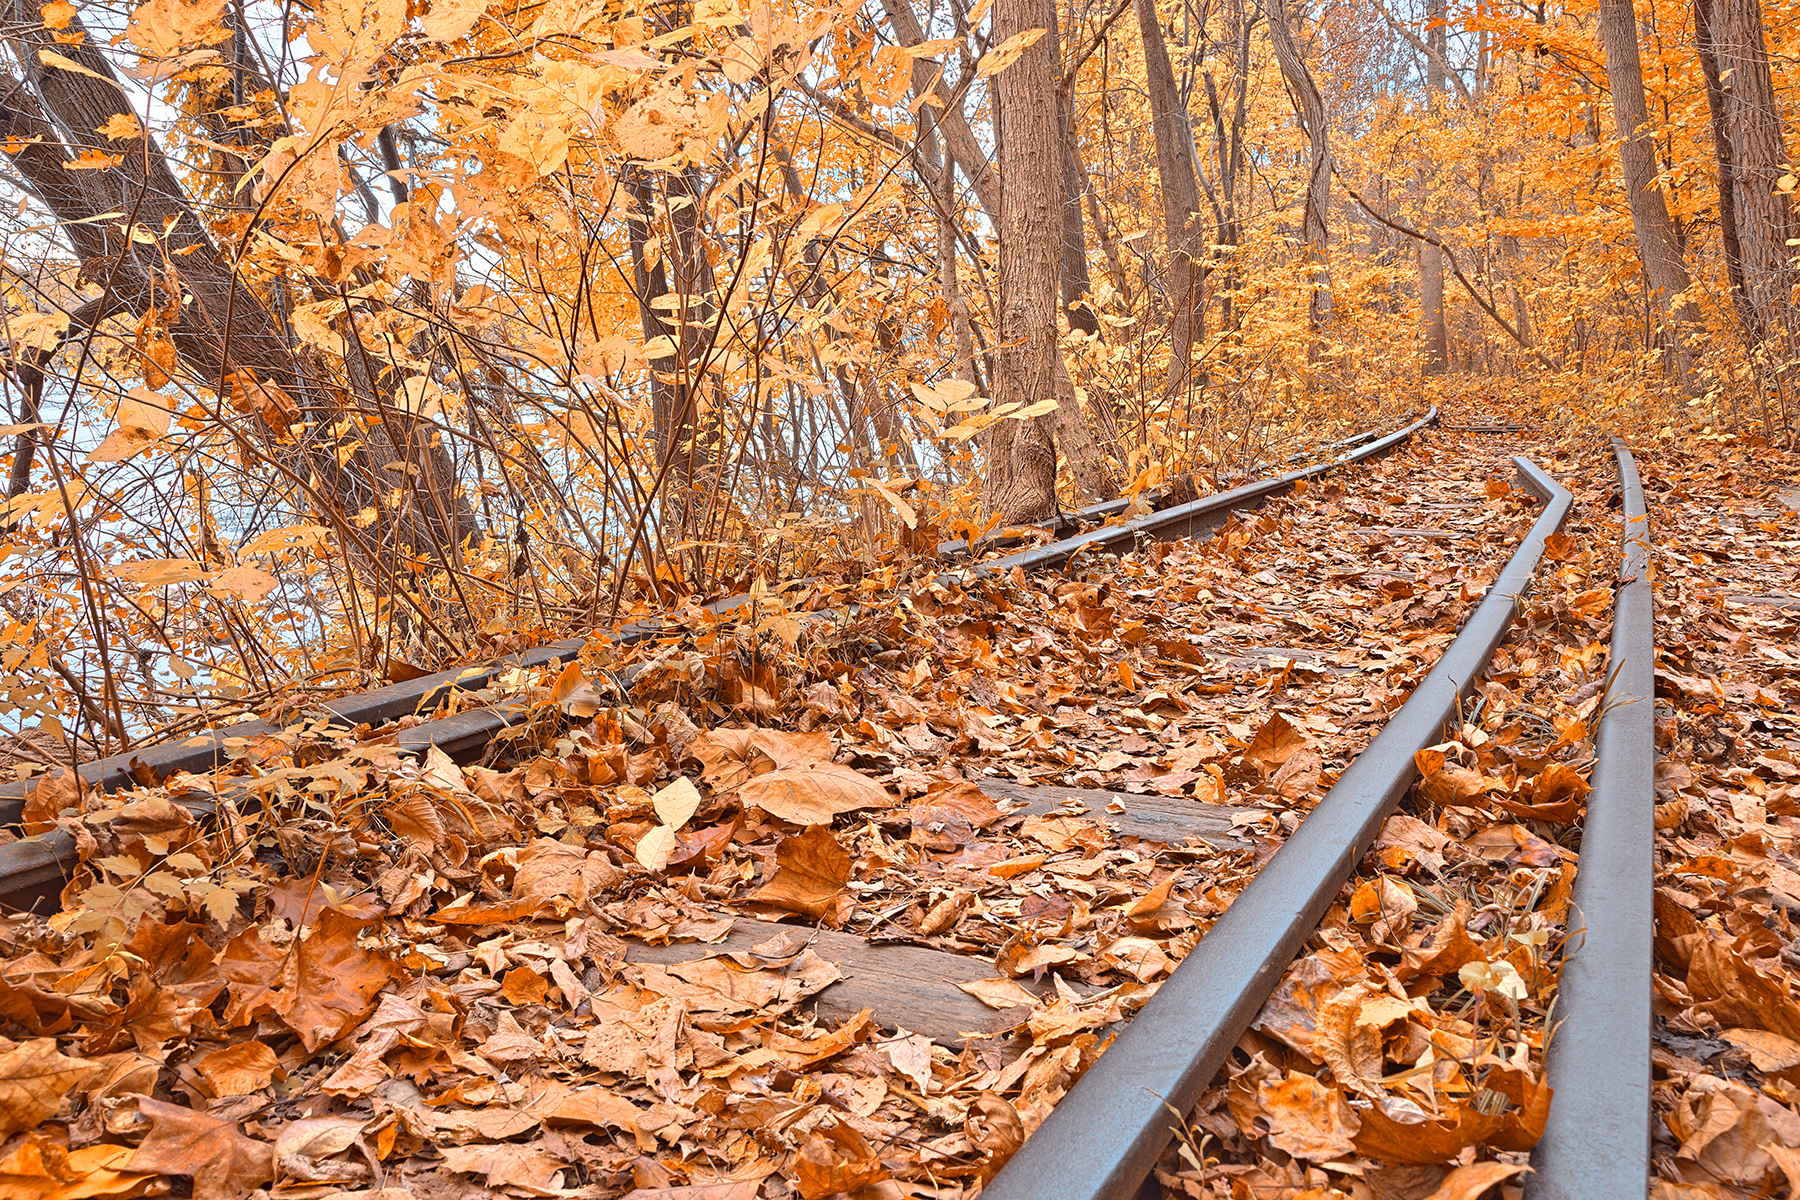 Gold Ember Railroad - HDR, Rail, Serene, Scenic, Scenery, HQ Photo